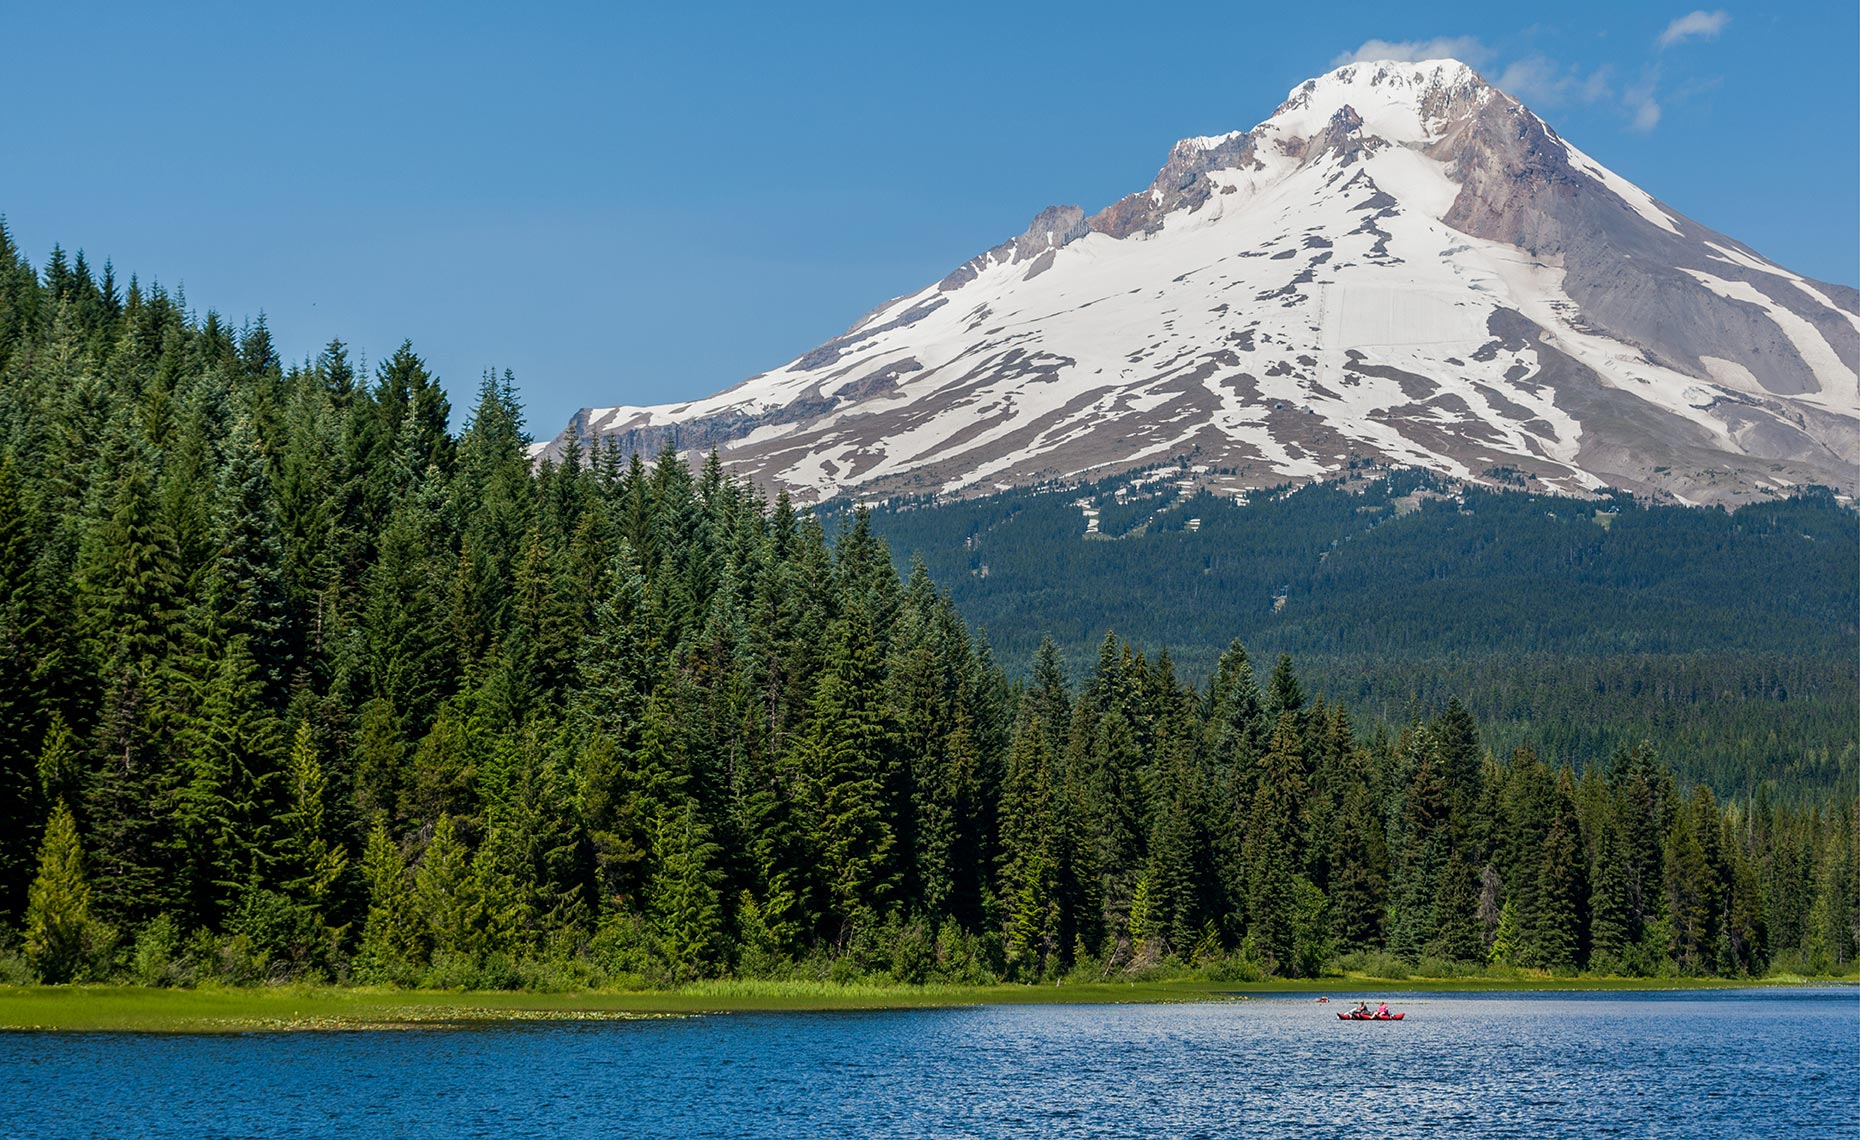 30_Mt_Hood_Trillum_Lake_Environment_Landscape_Chris_Wellhausen_Photography.JPG